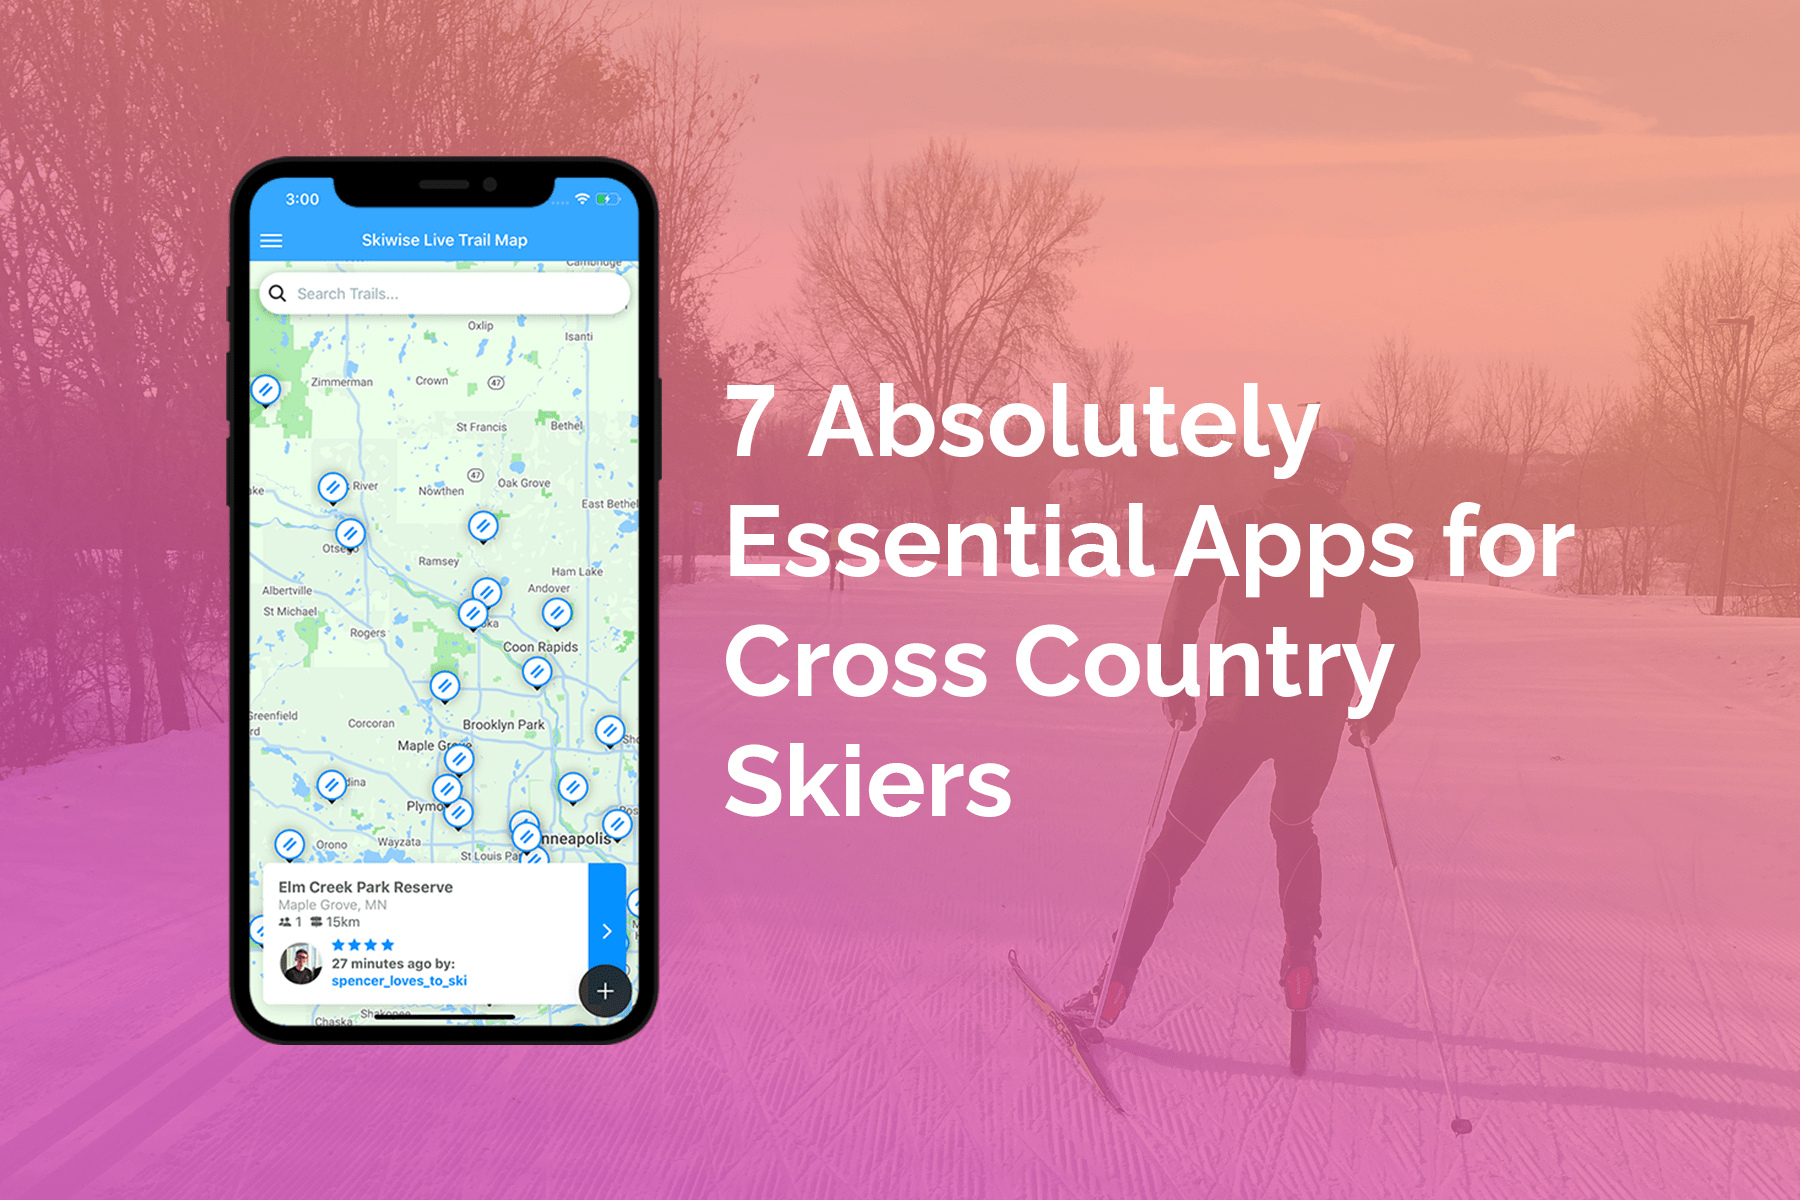 7 Absolutely Essential Apps for Cross Country Skiers